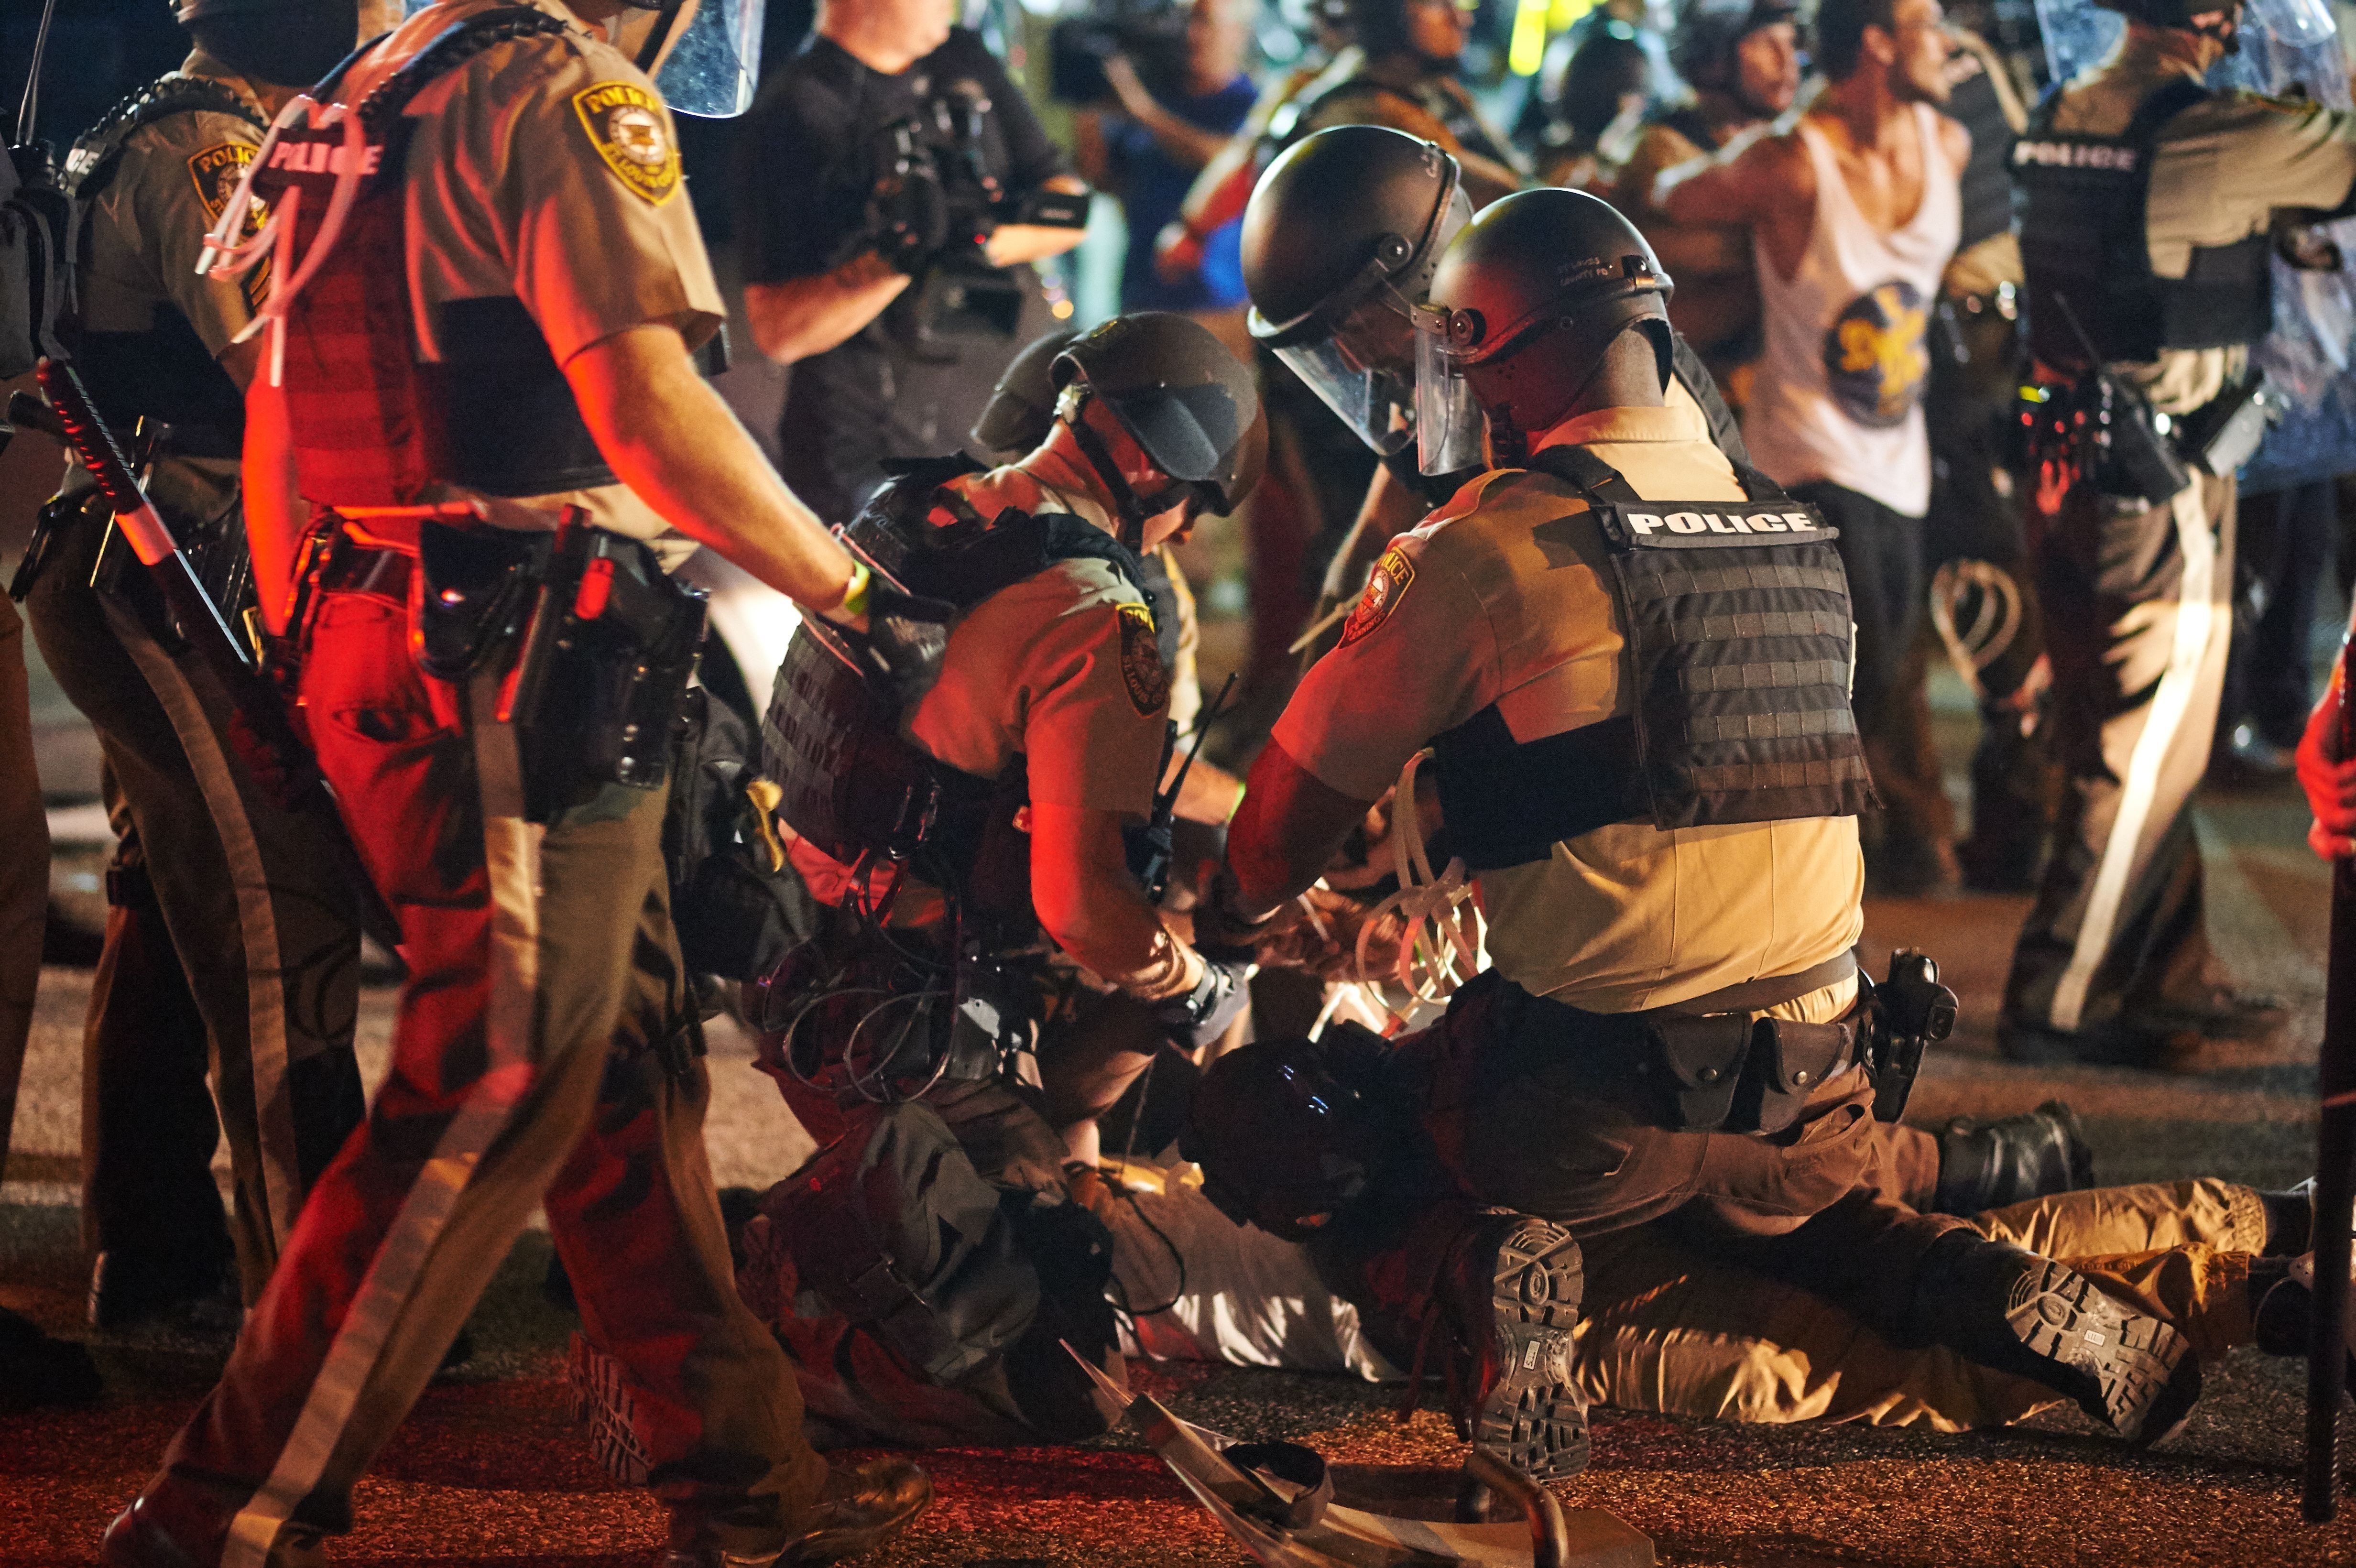 Police were too quick to arrest protesters and reporters during the Ferguson unrest.